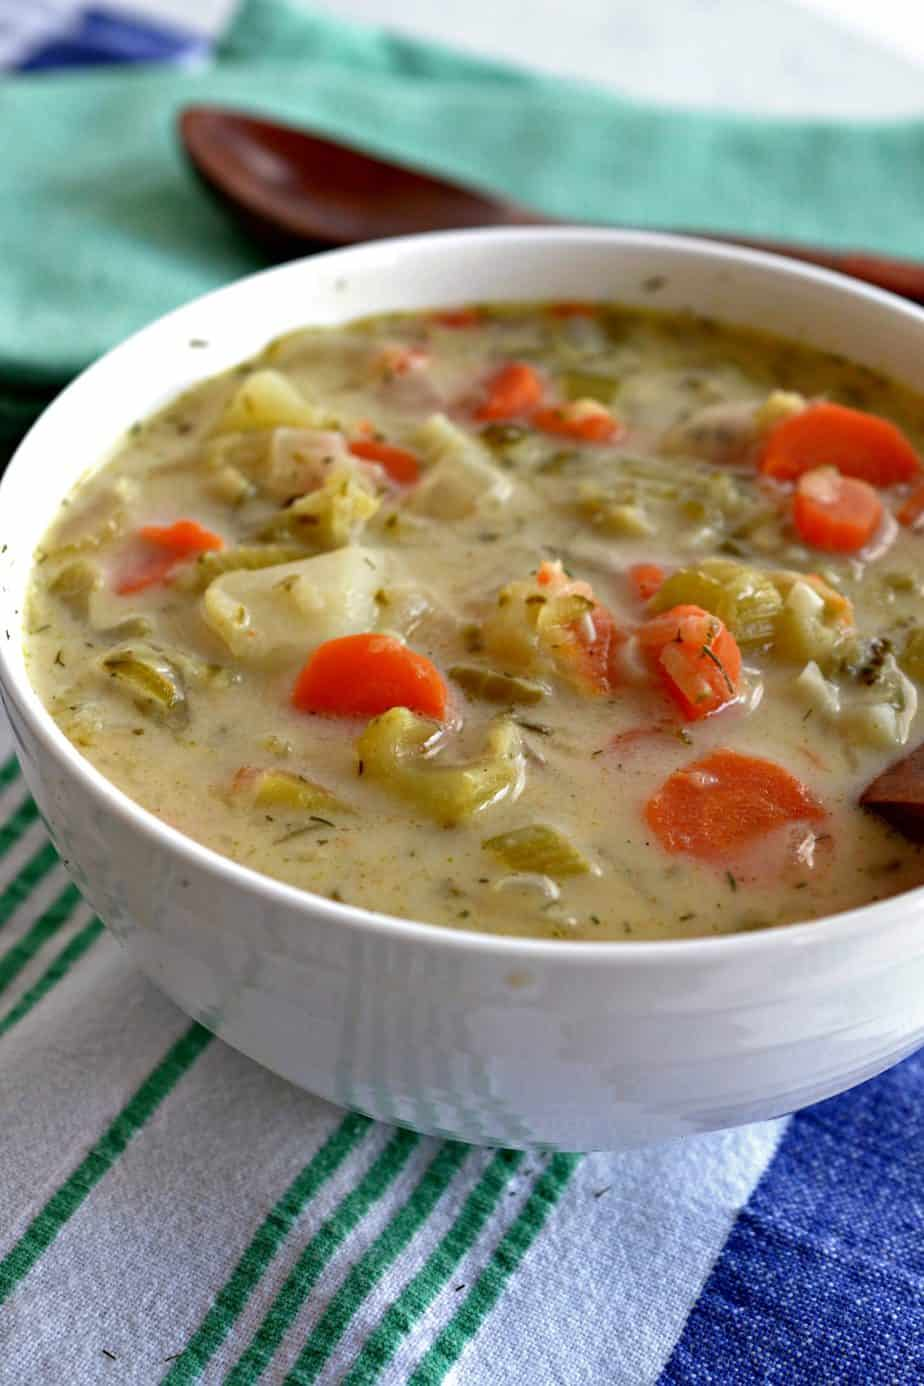 This Creamy Dill Soup has tender carrots, celery and onions in a creamy broth, seasoned with herbs and spices